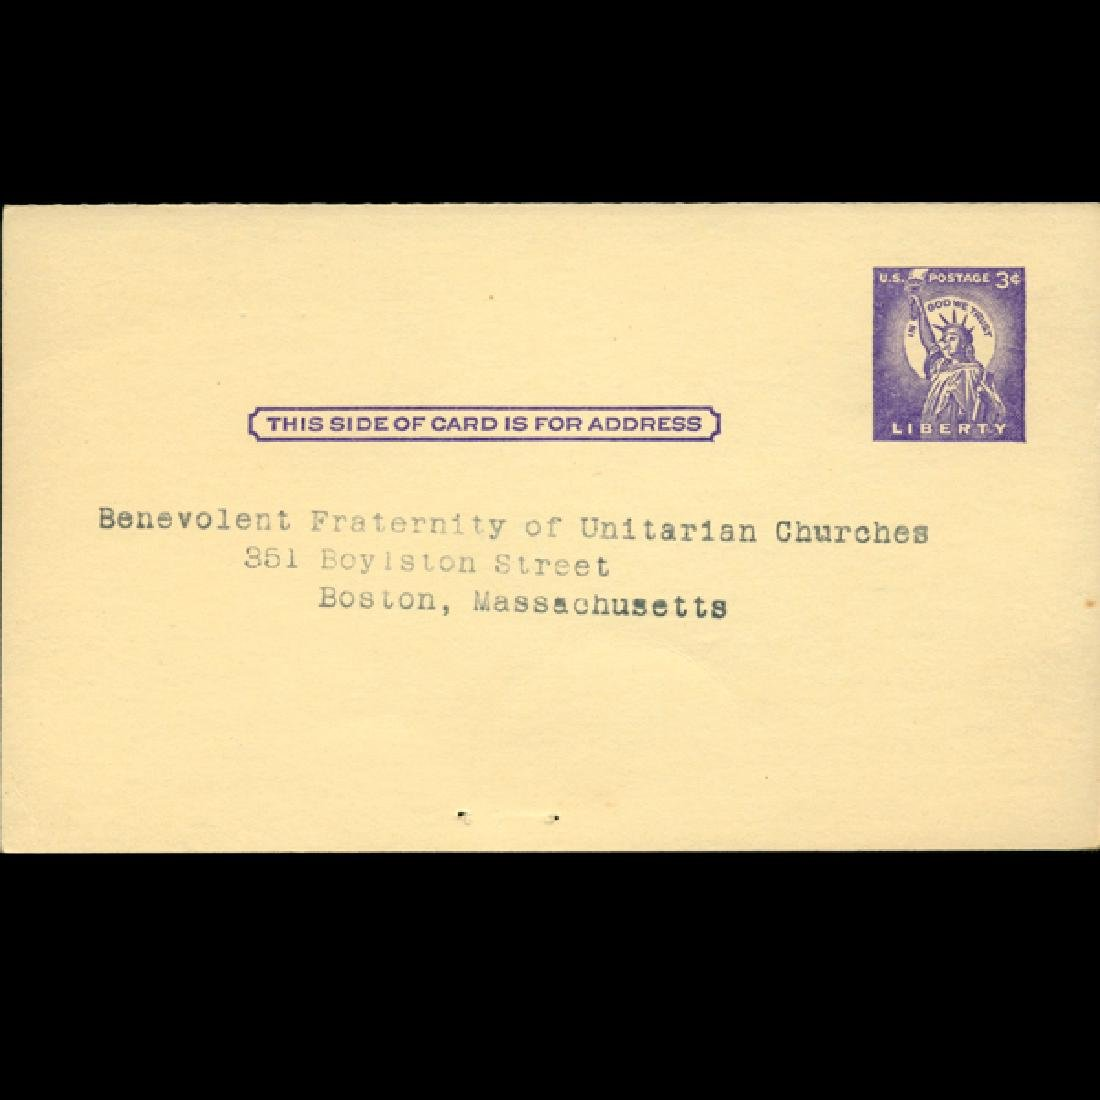 1958 US Unused Addressed Postal Card